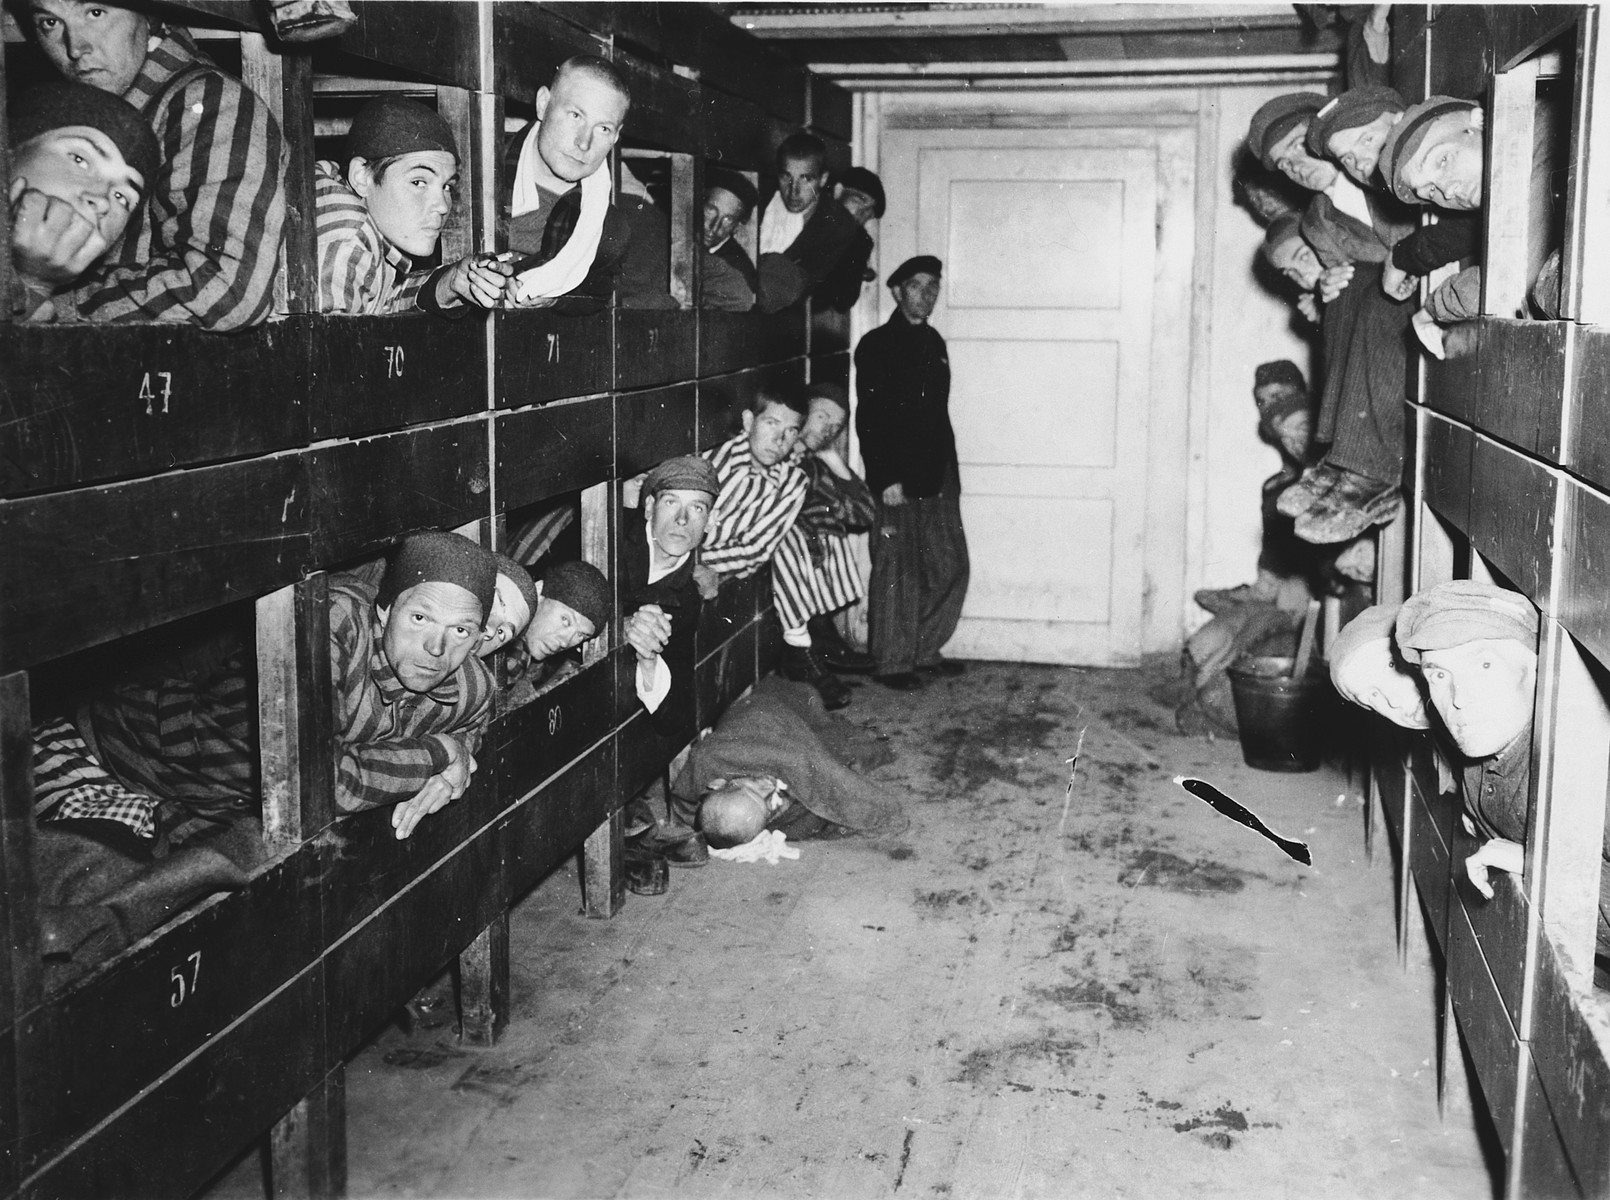 Survivors look out from their bunks inside a barrack in the Dachau concentration camp.